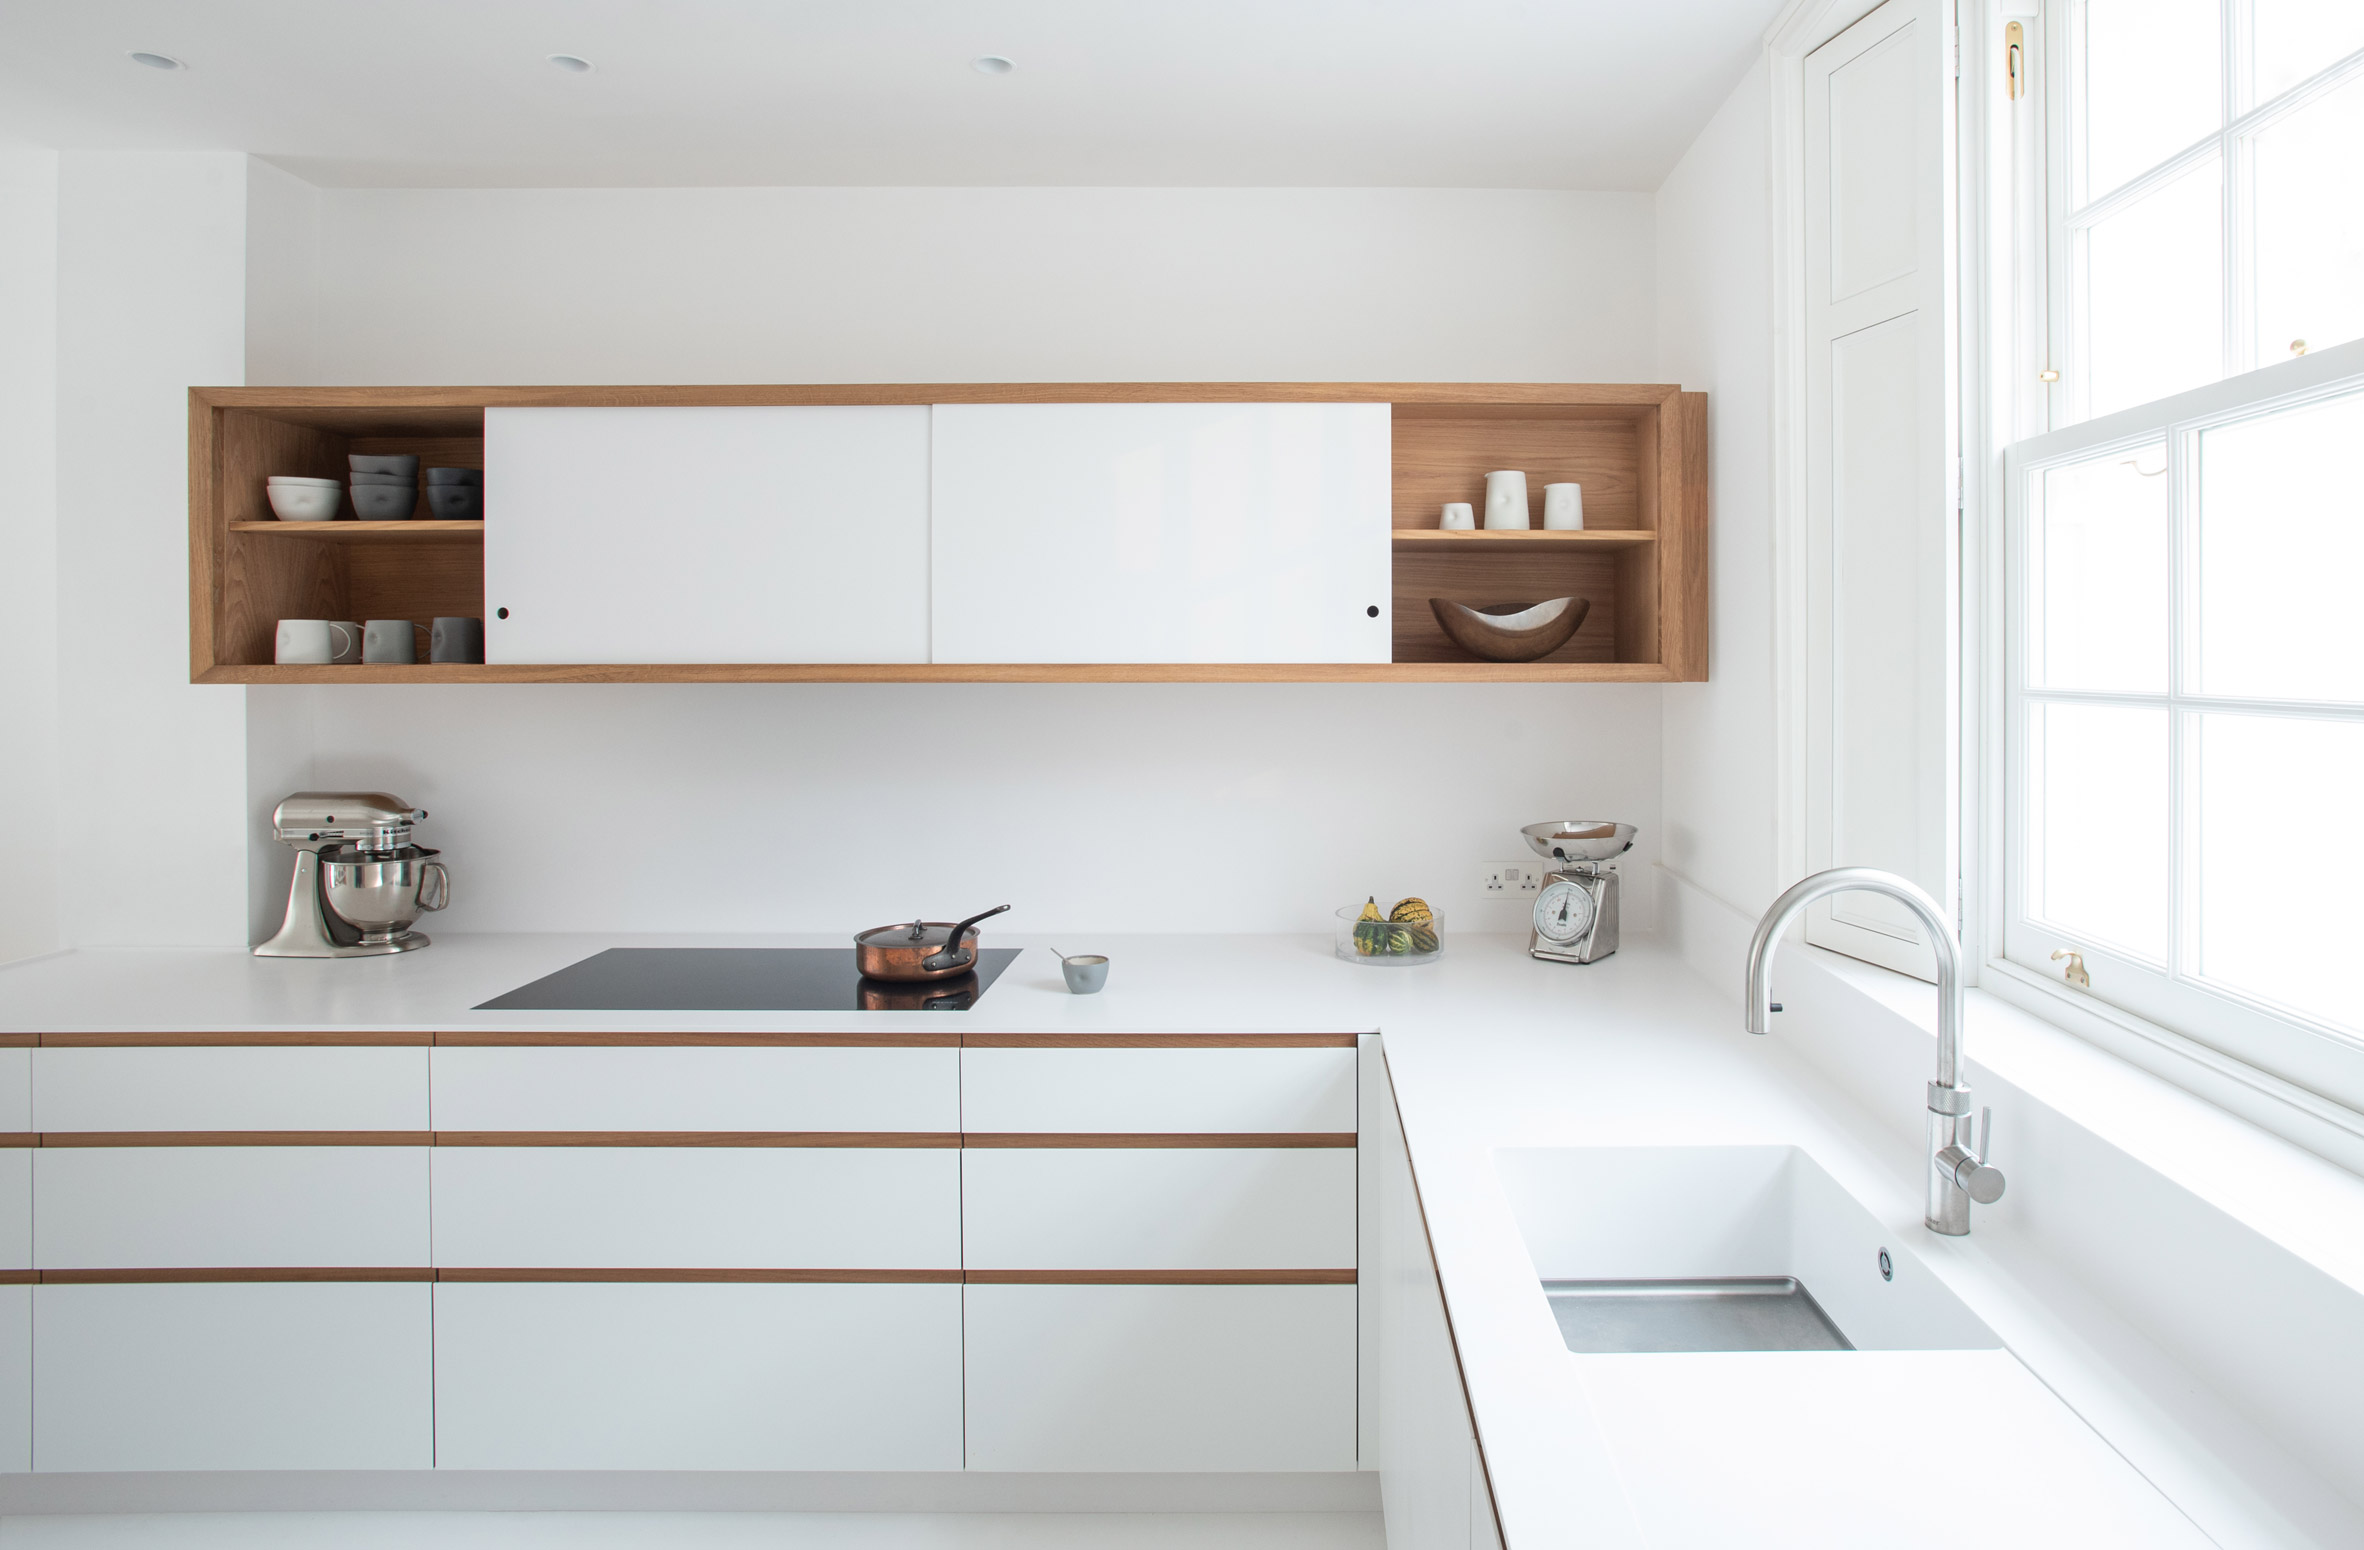 The kitchen has a white and oak palette